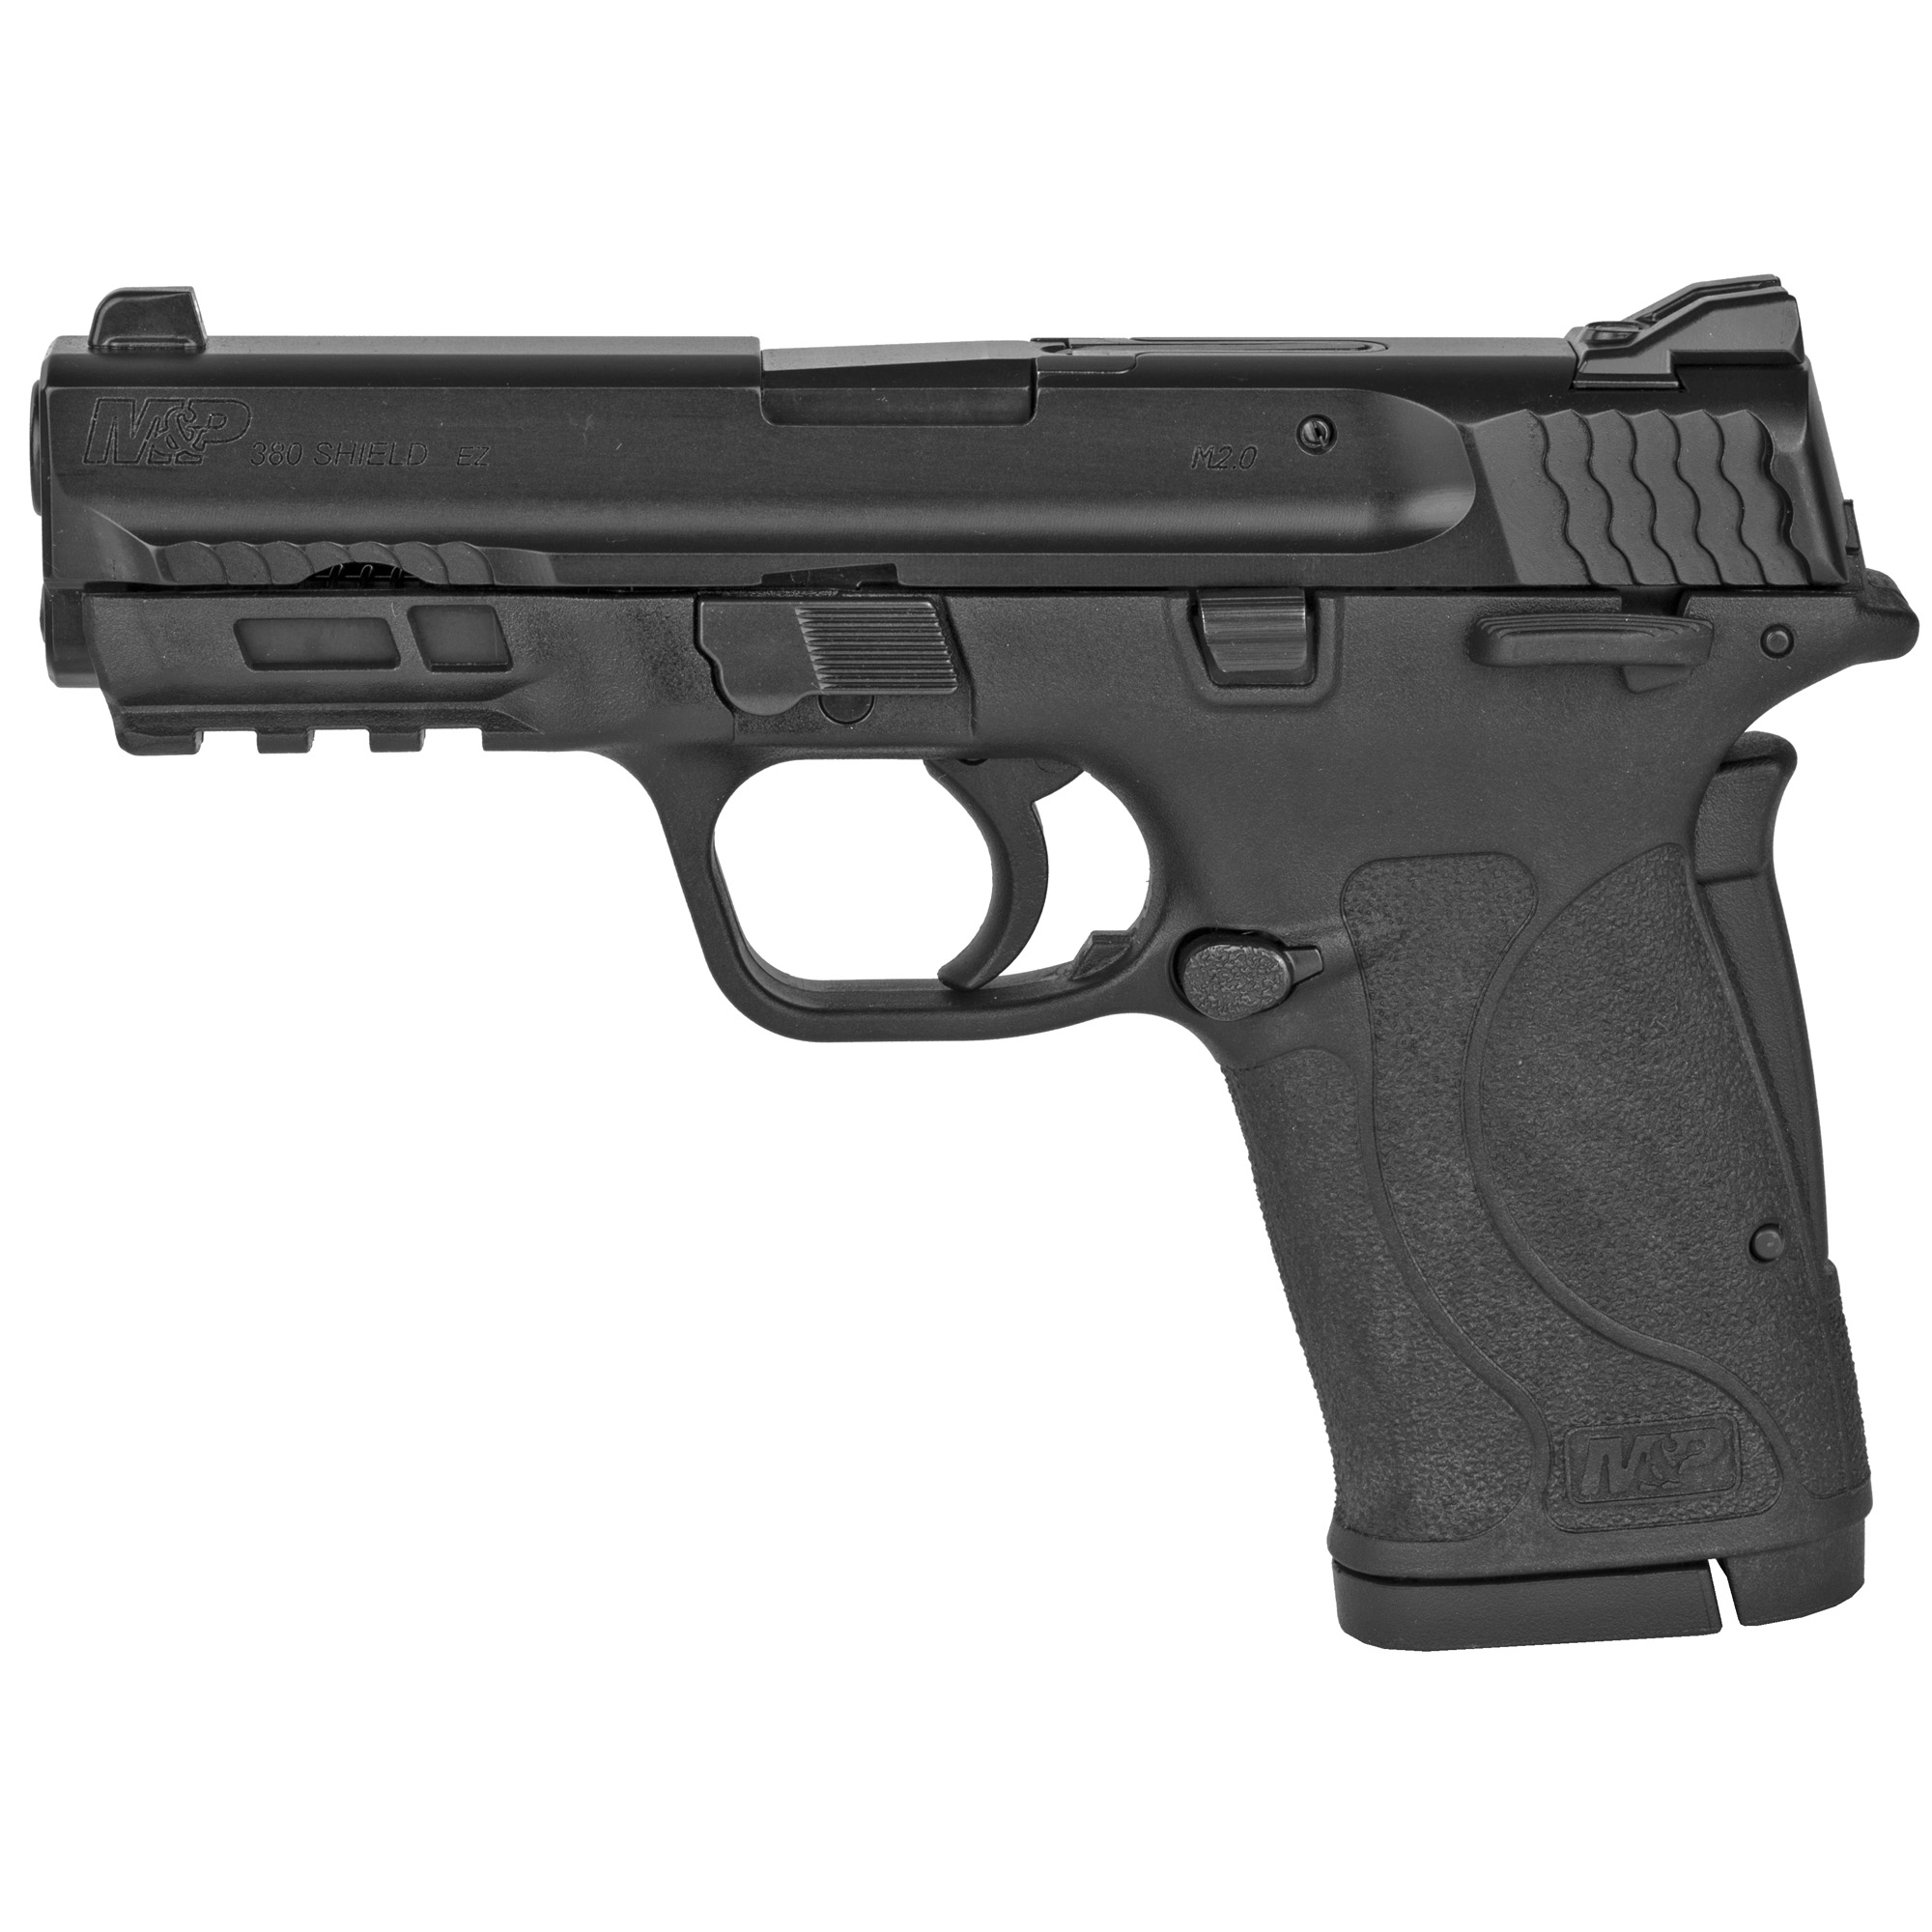 "Built for personal protection and every-day carry"" the M&P380 Shield EZ is chambered in 380 Auto and is designed to be easy to use"" featuring an easy-to-rack slide"" easy-to-load magazine"" and easy-to-clean design. Built for personal and home protection"" the innovative M&P380 Shield EZ pistol is the latest addition to the M&P M2.0 family and provides an easy-to-use protection option for both first-time shooters and experienced hand gunners alike. Includes two 8 round magazines."